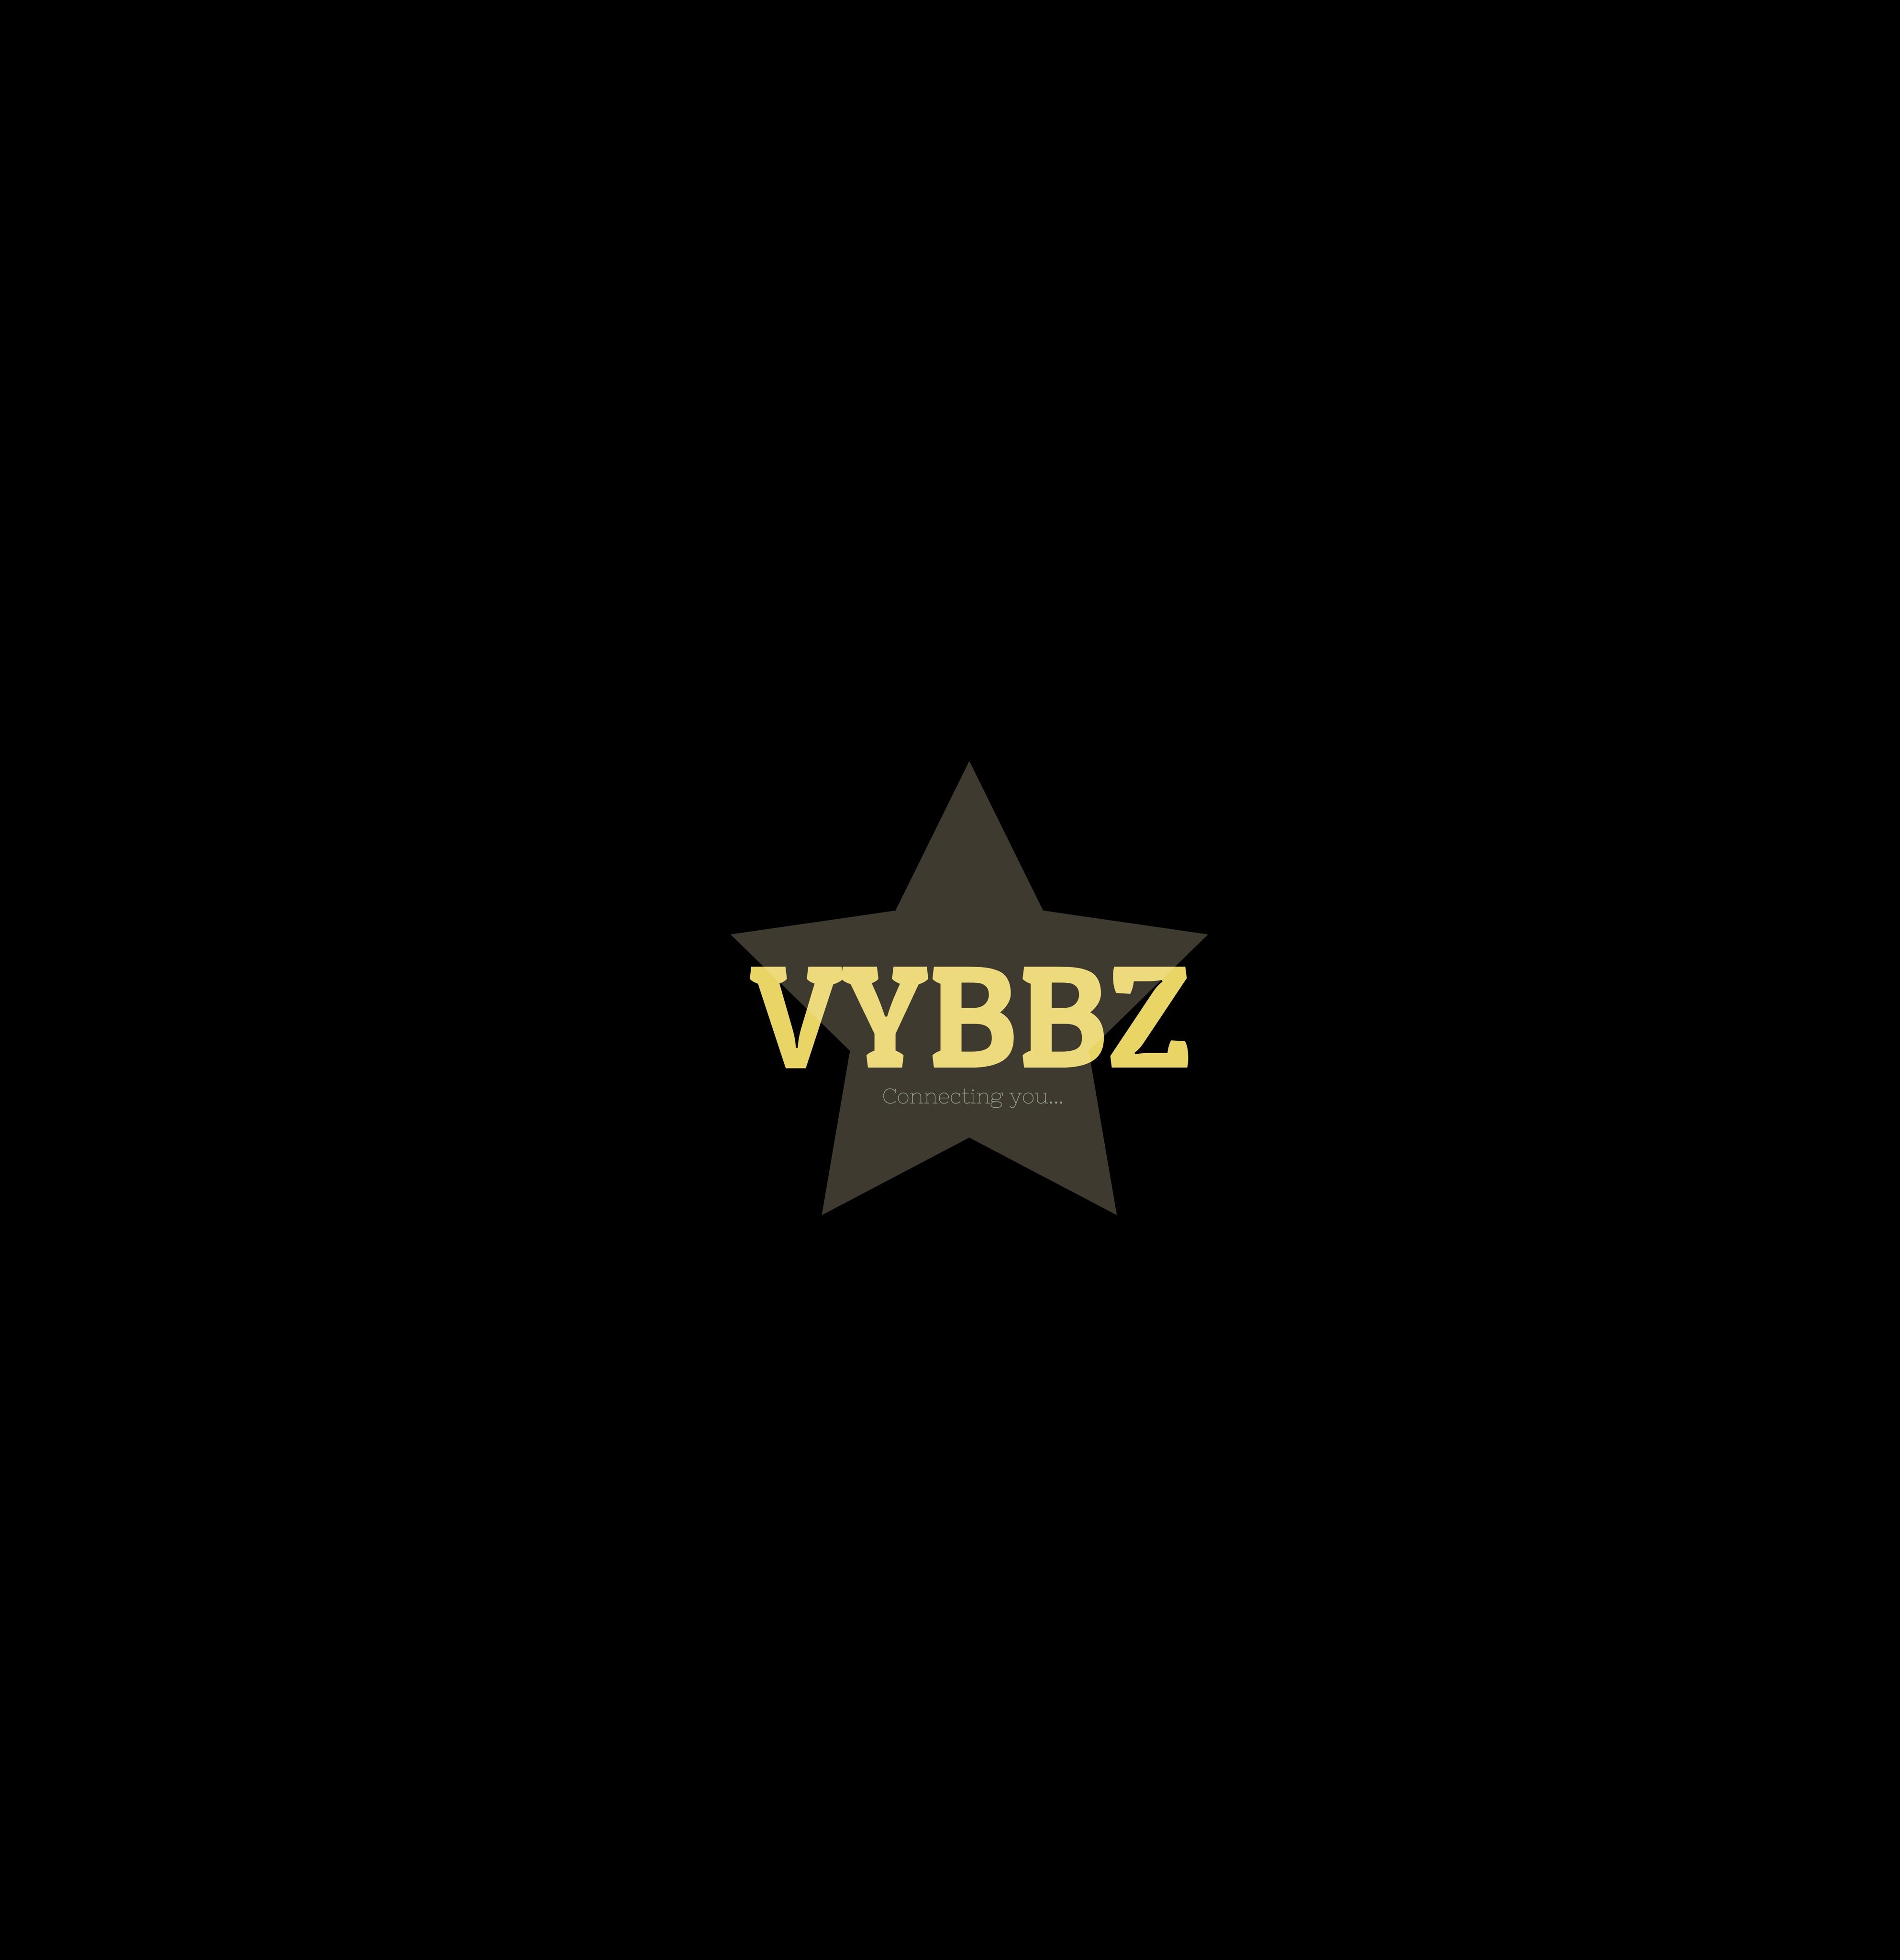 Introducing Vybbz, the Exclusive Social Networking Platform for Professionals